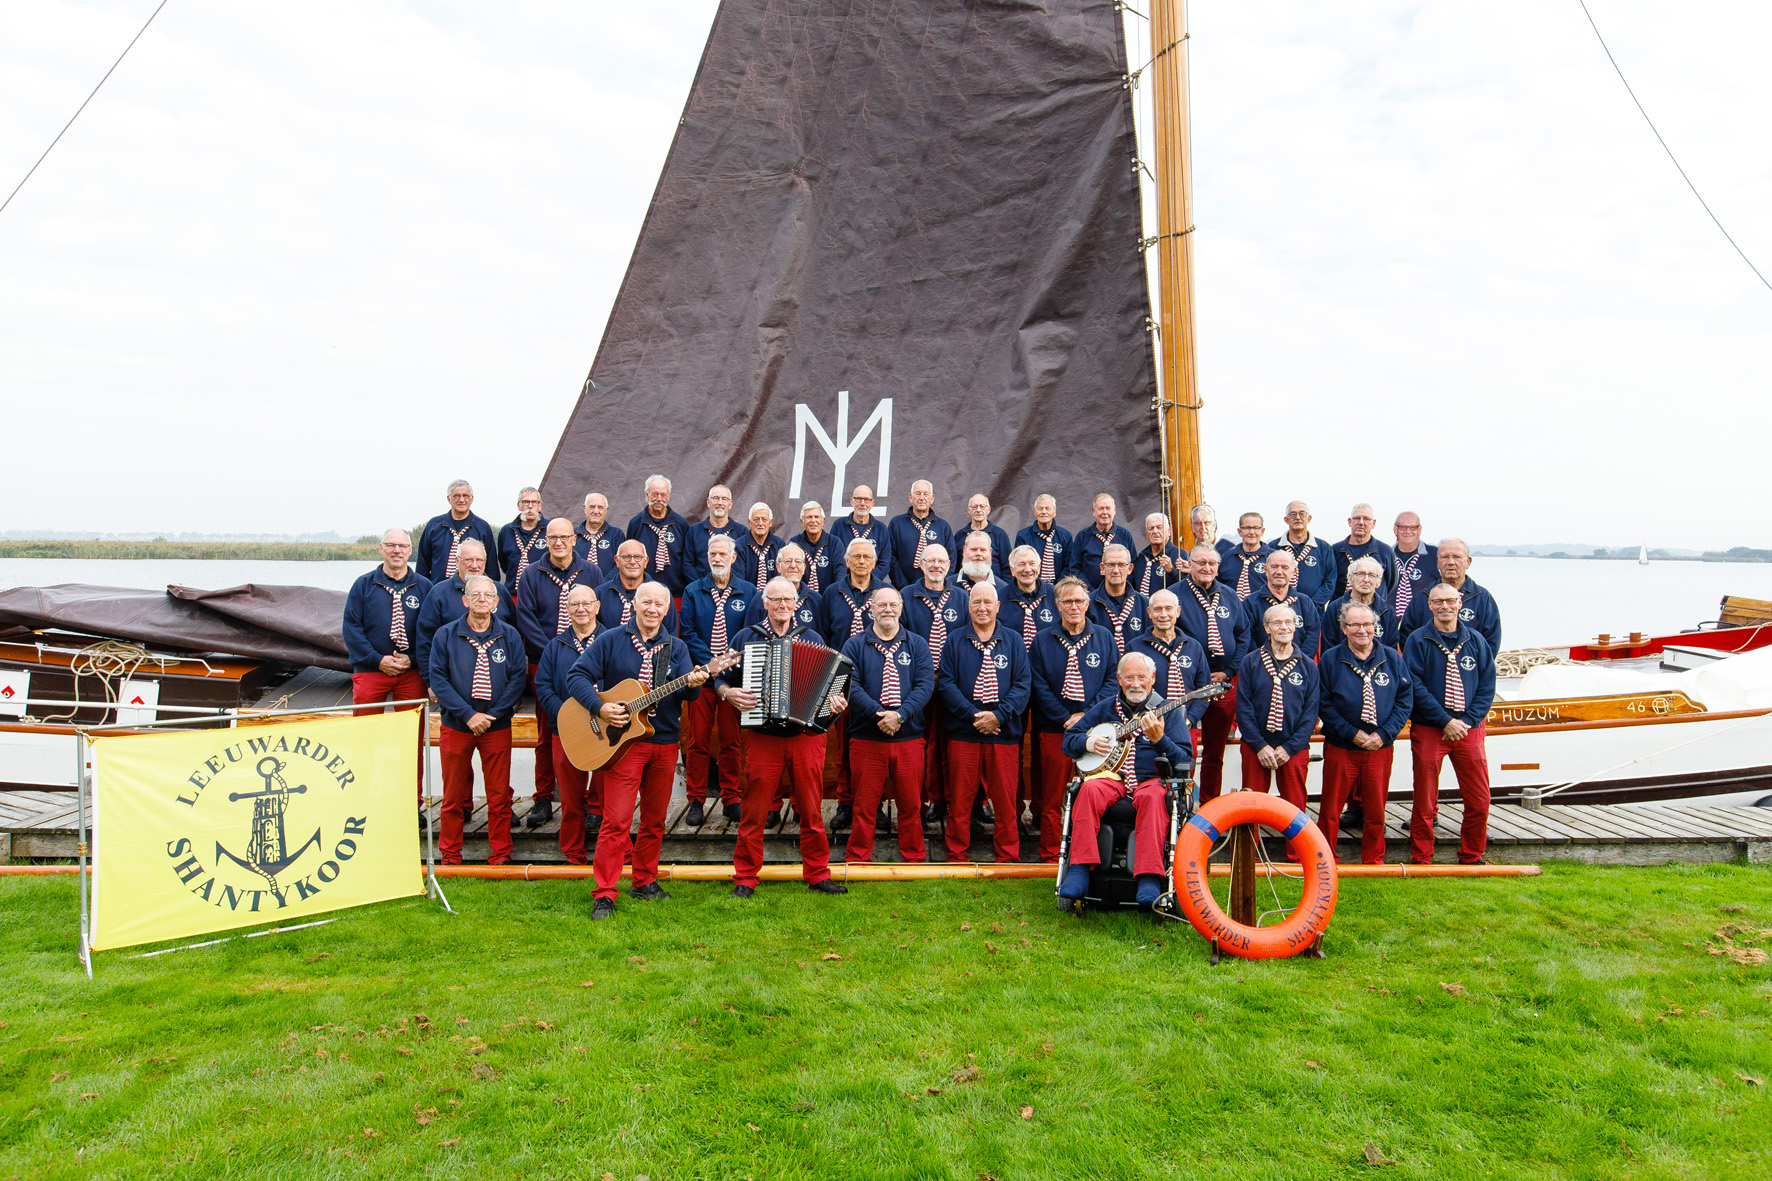 Internationaal GJ Shantyfestival in Leeuwarden, Friesland